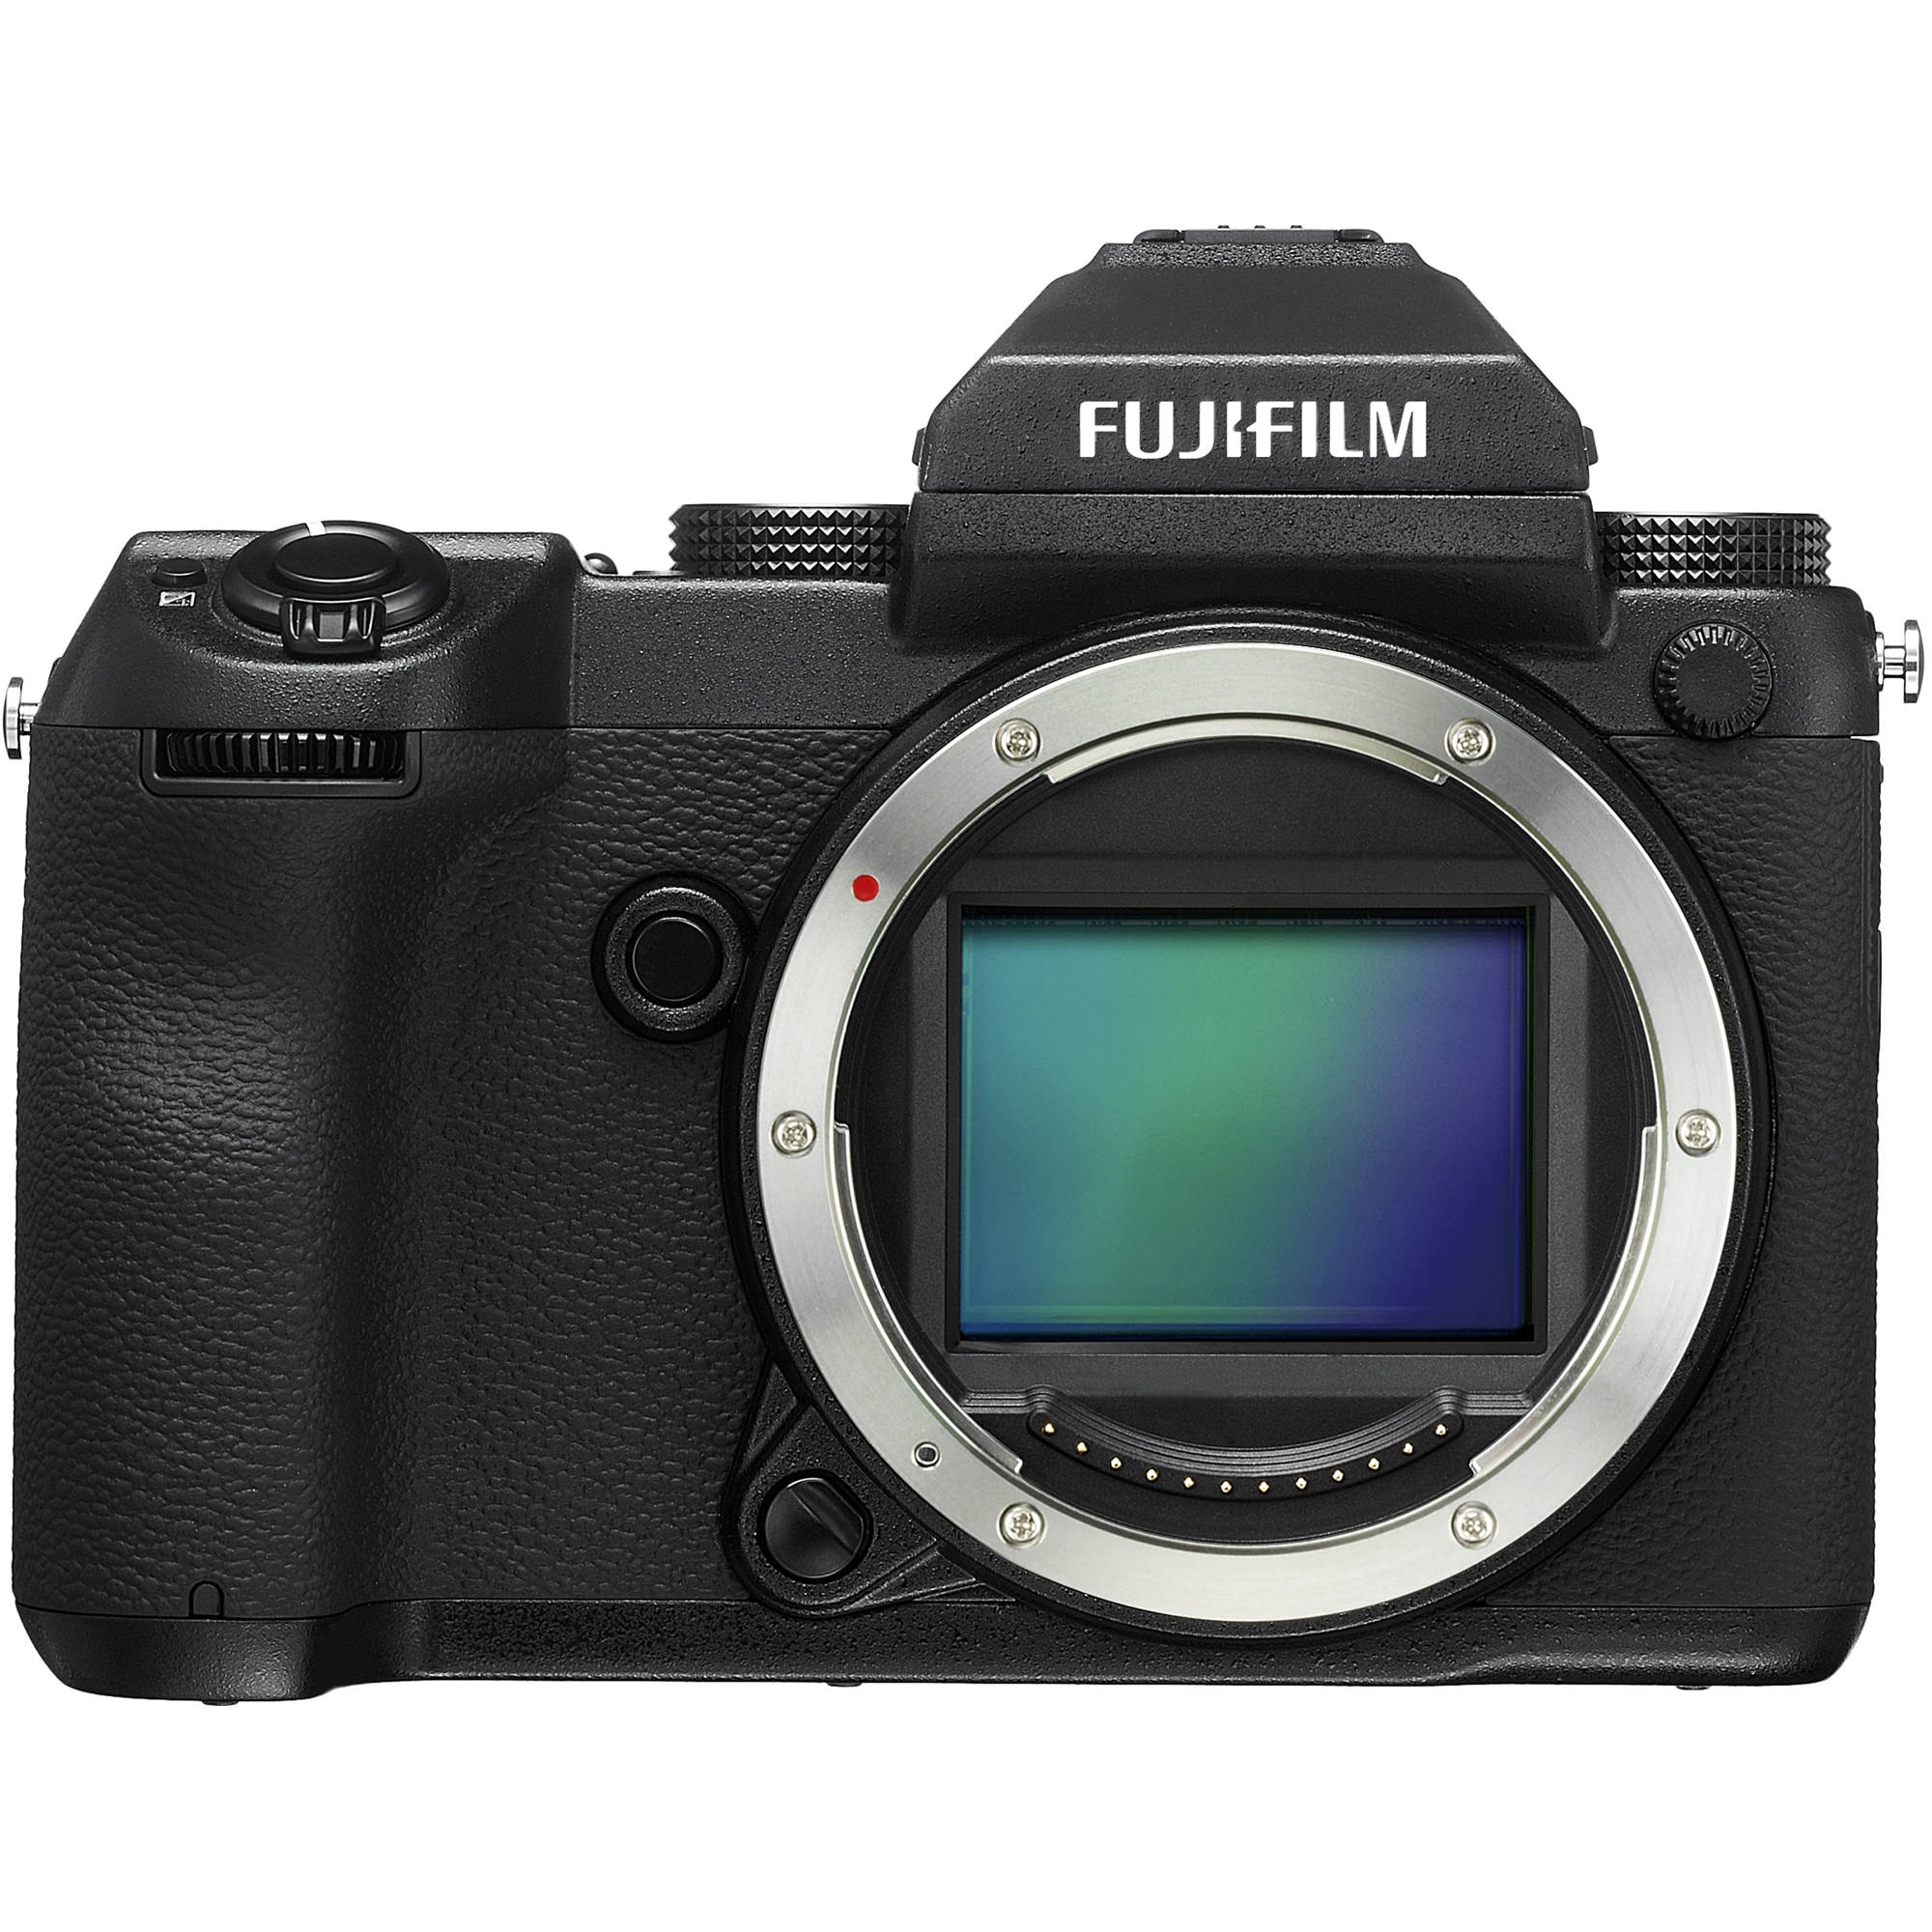 The Fujifilm GFX 50S body. Much less enormous than it looks in the image